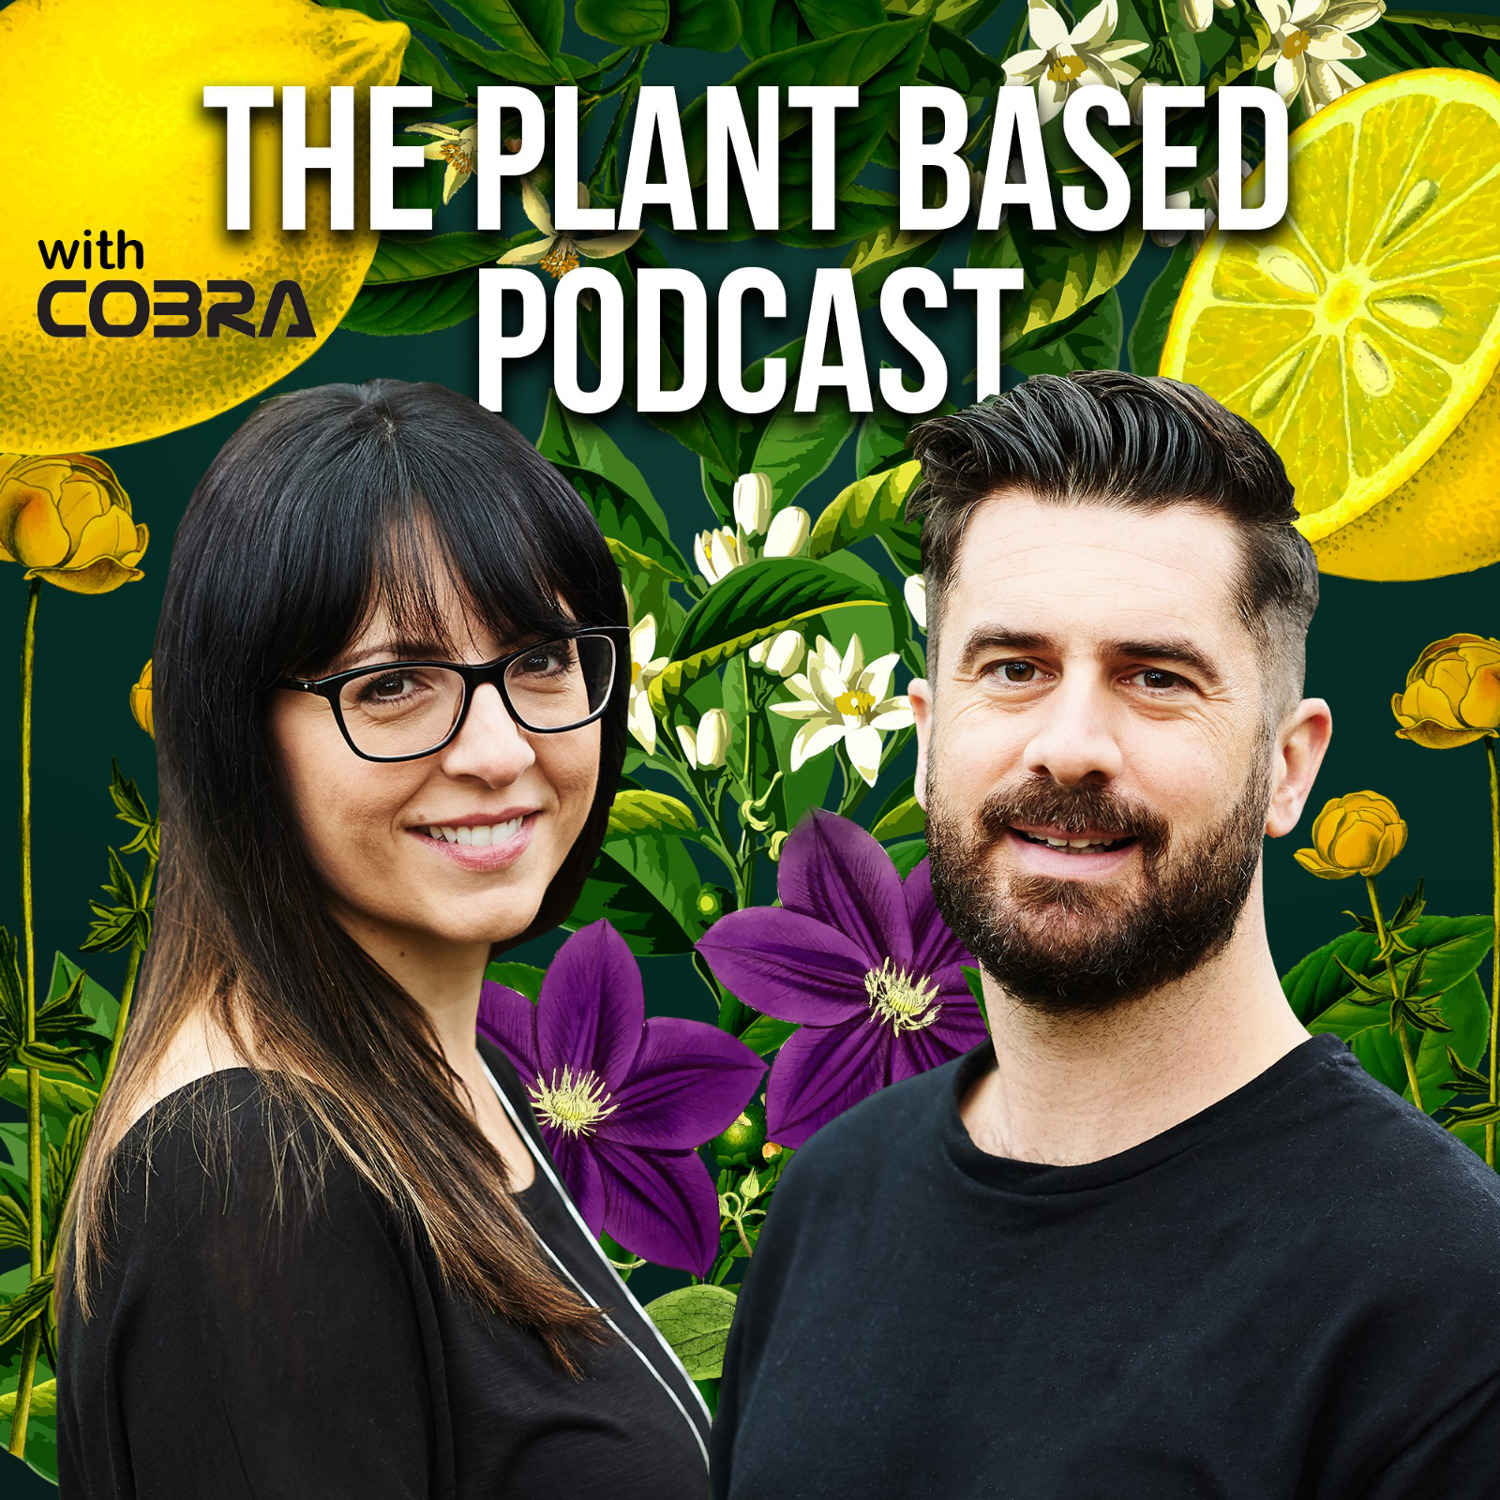 The Plant Based Podcast S4 - News 23/05/21